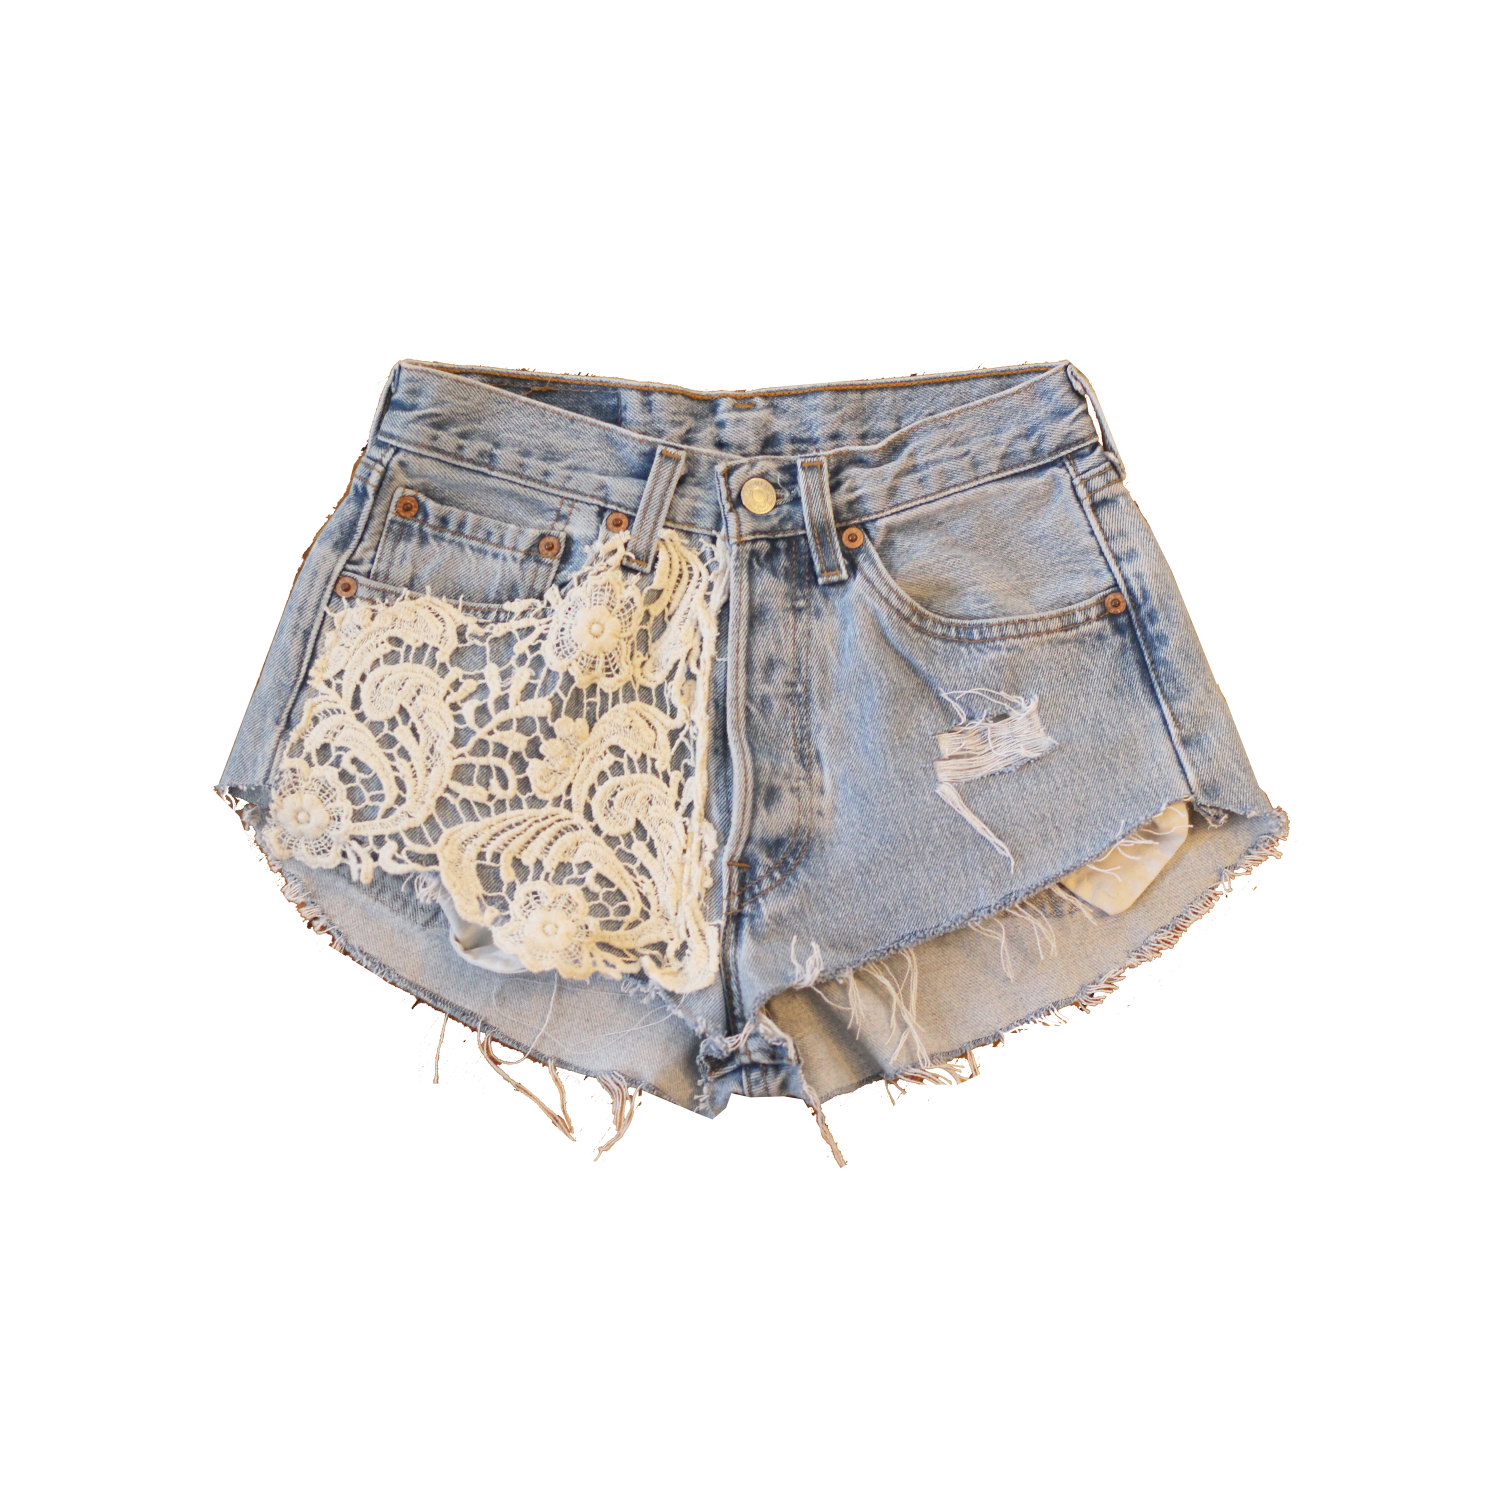 Vintage lace collection highwaisted 501 levi shorts with crochet pocket.